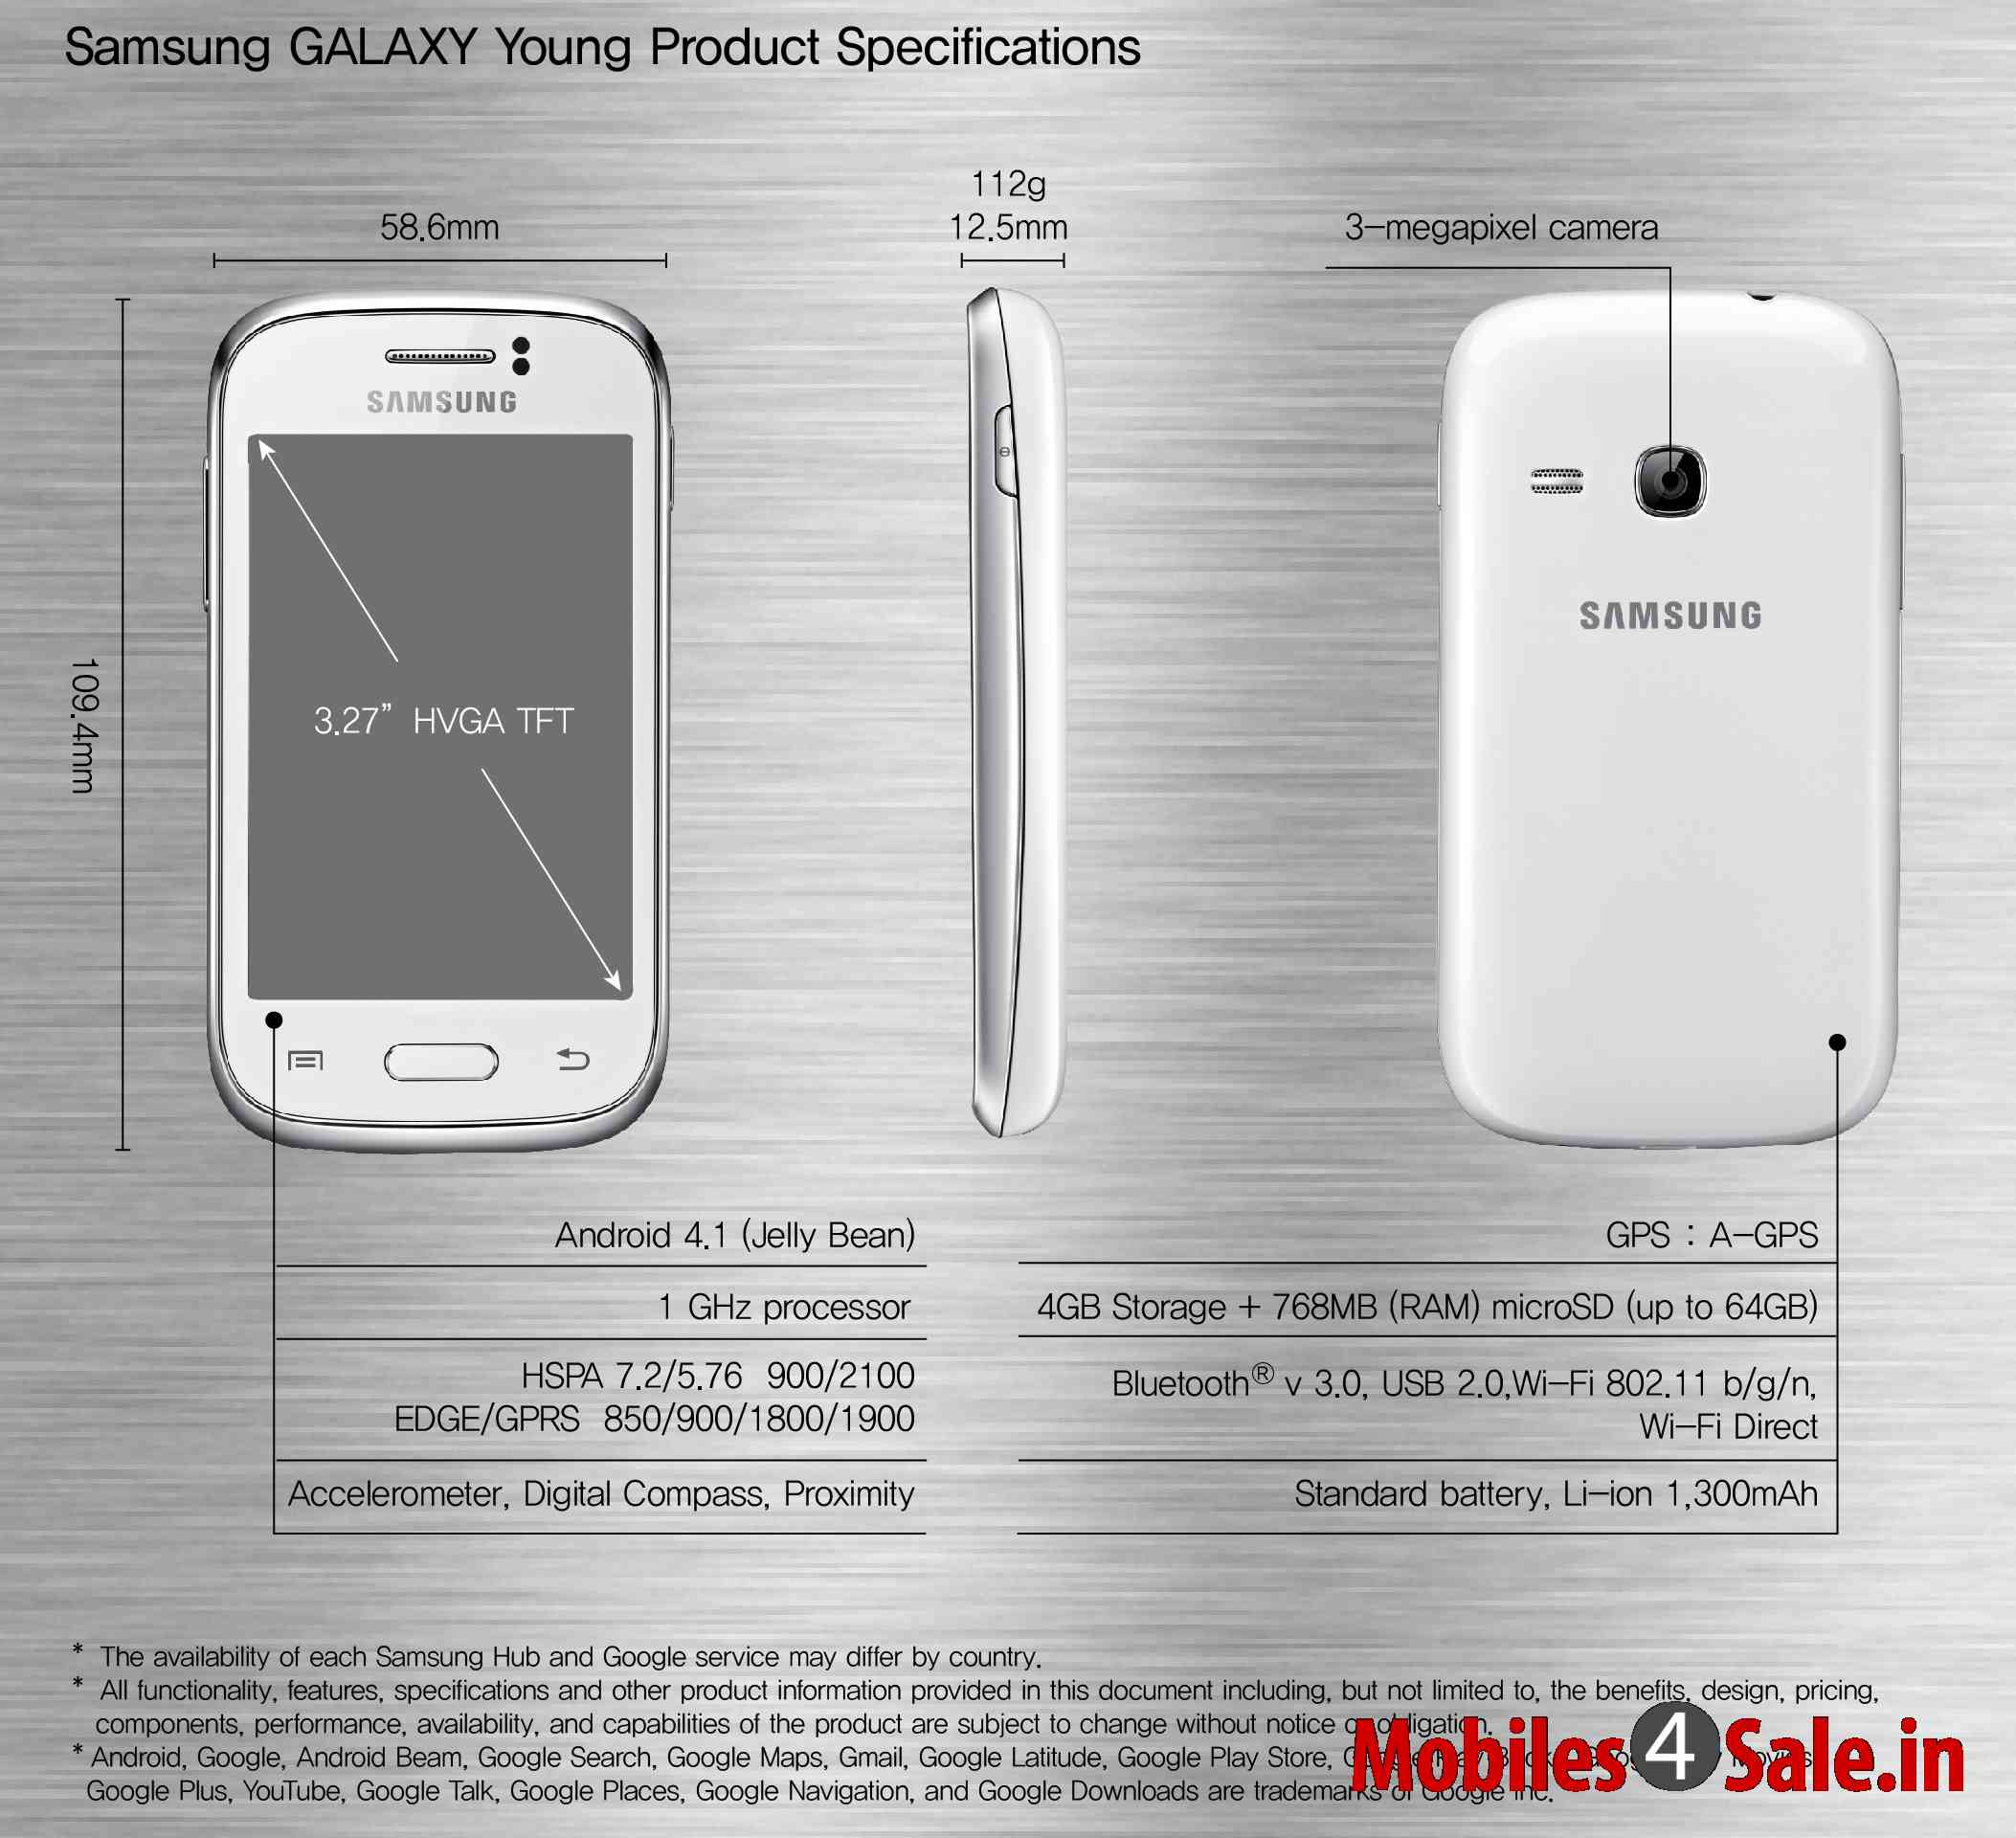 The Samsung Galaxy Young is supported by Android Operating System. It